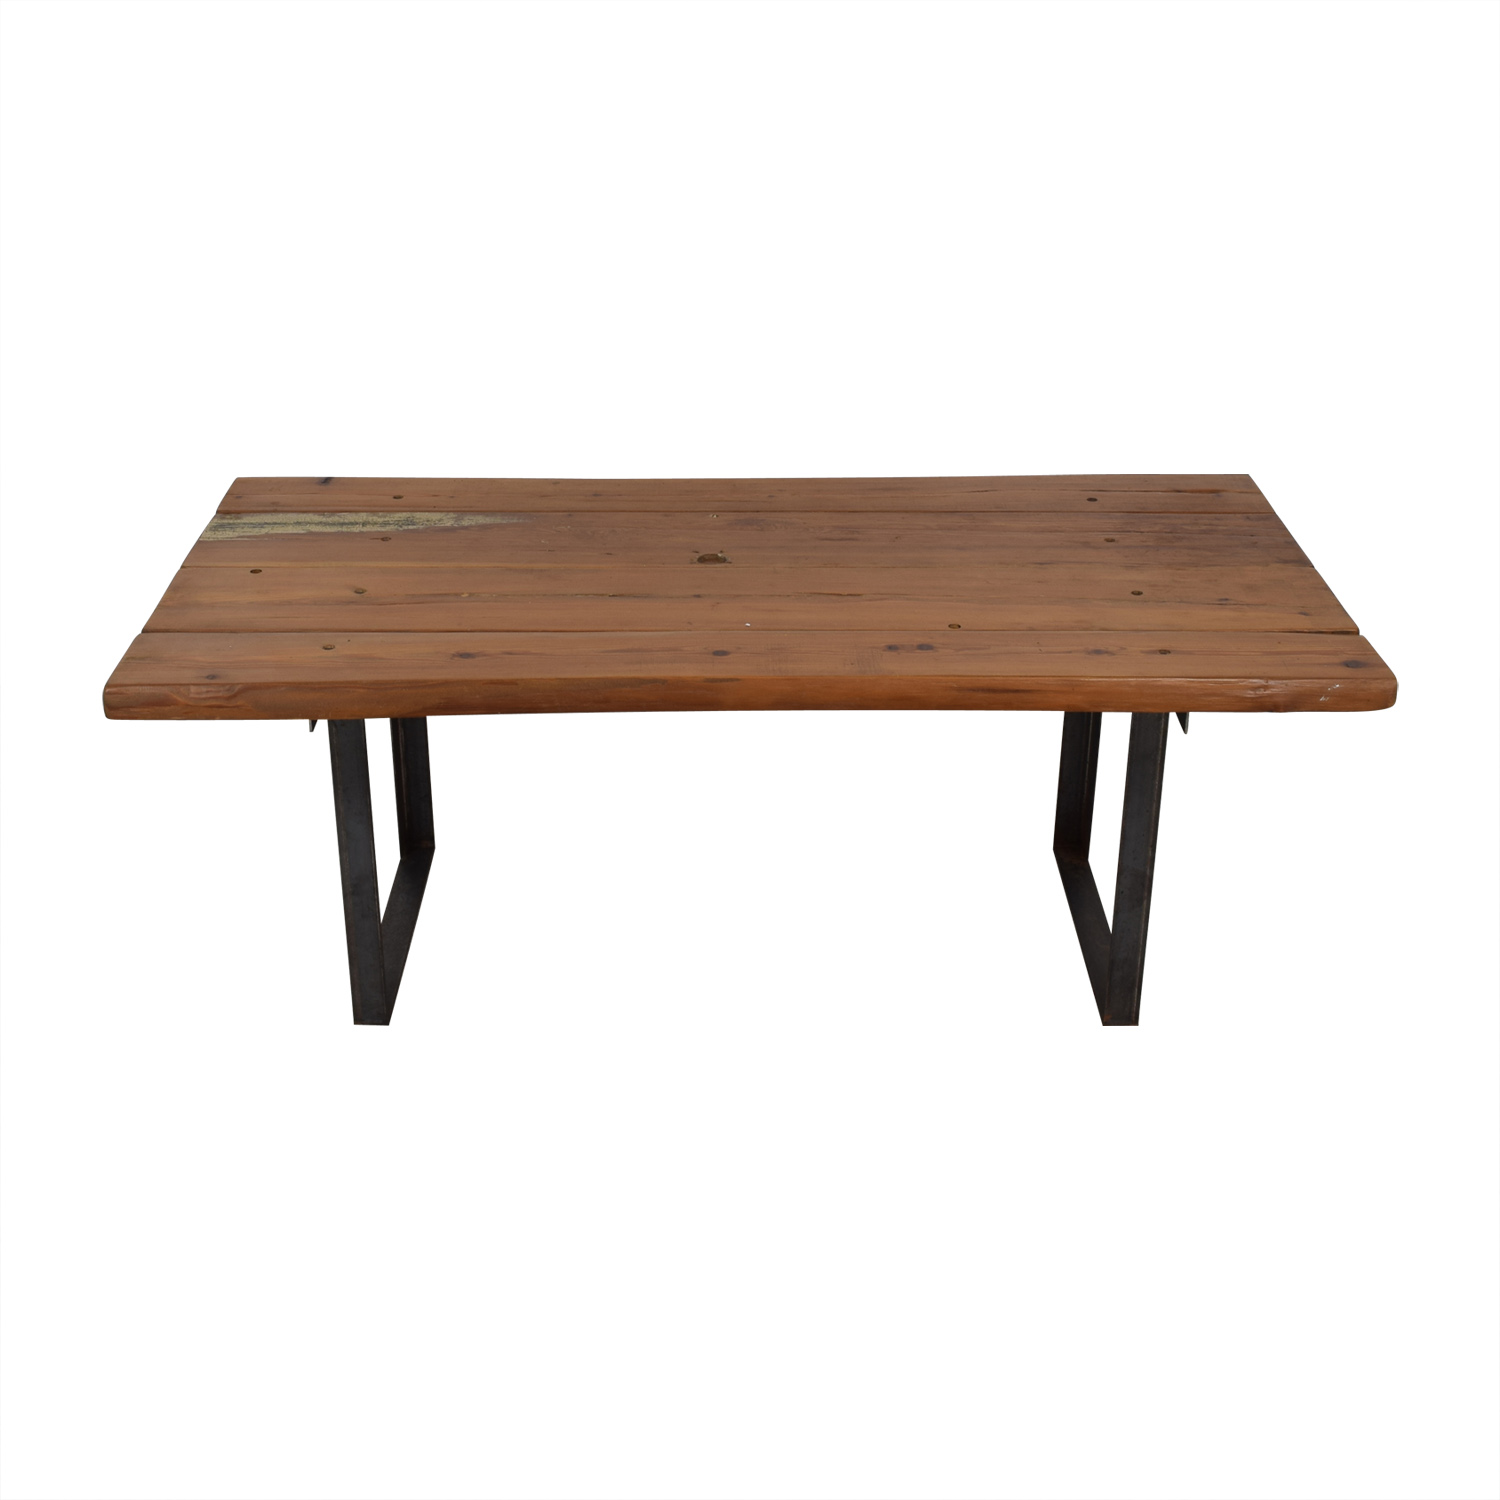 Pascal Benichou Industrial Rustic Wood Dining Table price